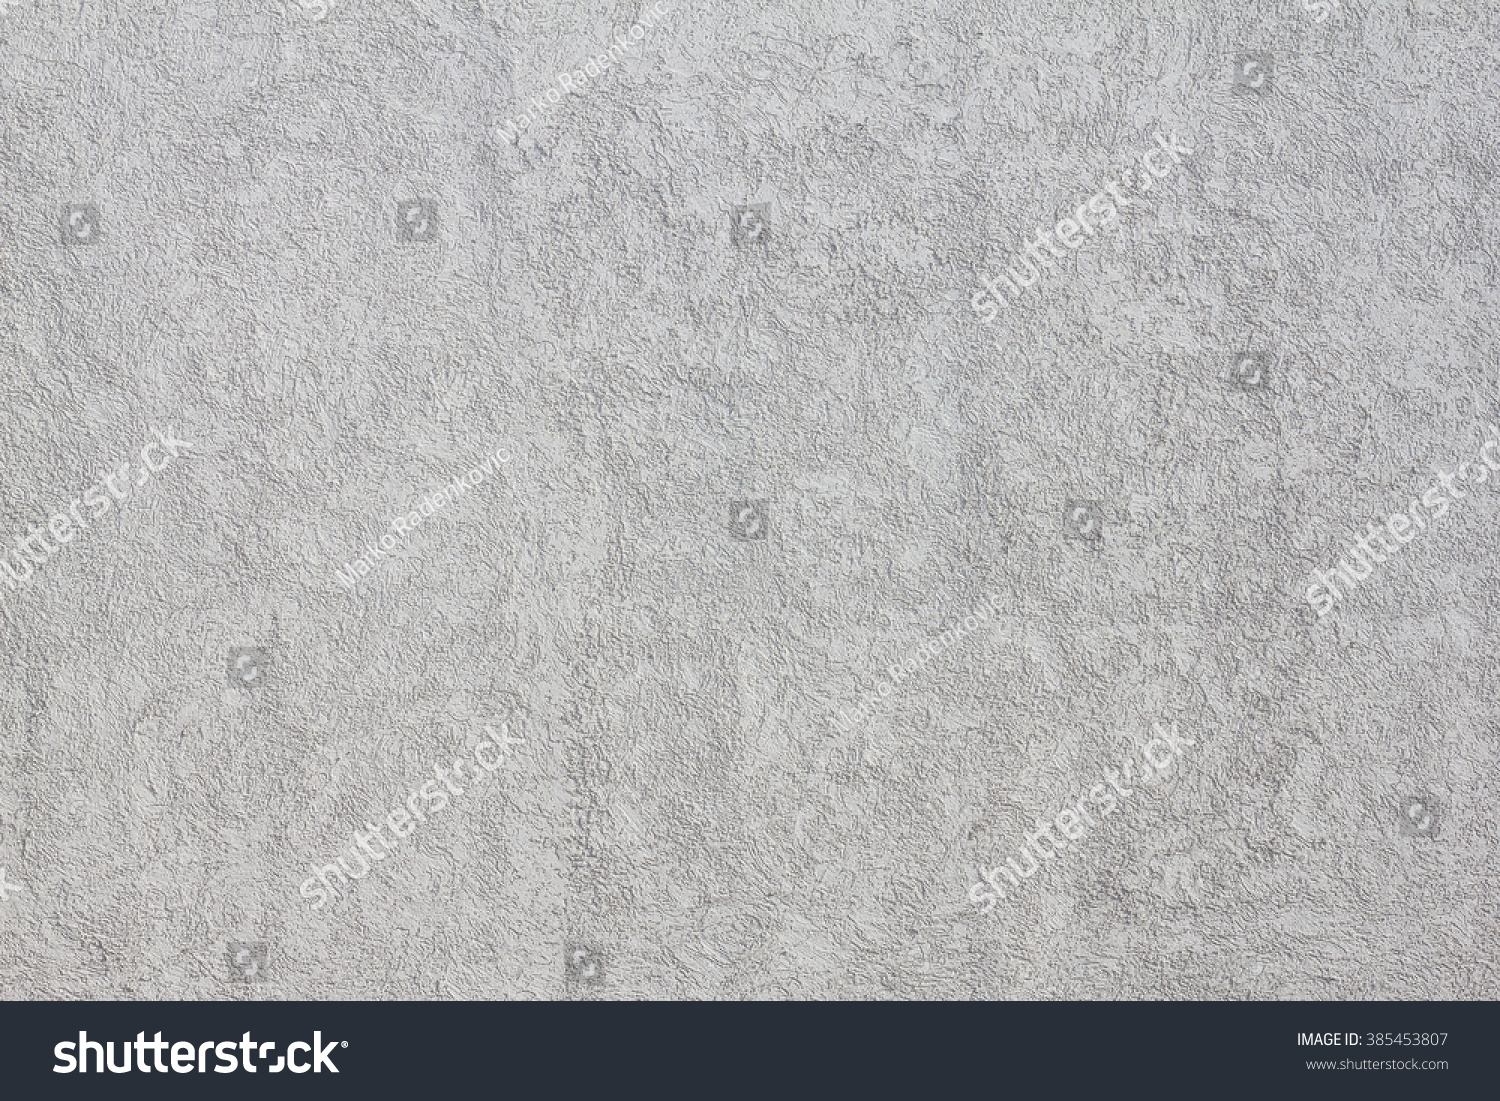 Rough White Wall Texture Stock Photo 385453807 Shutterstock